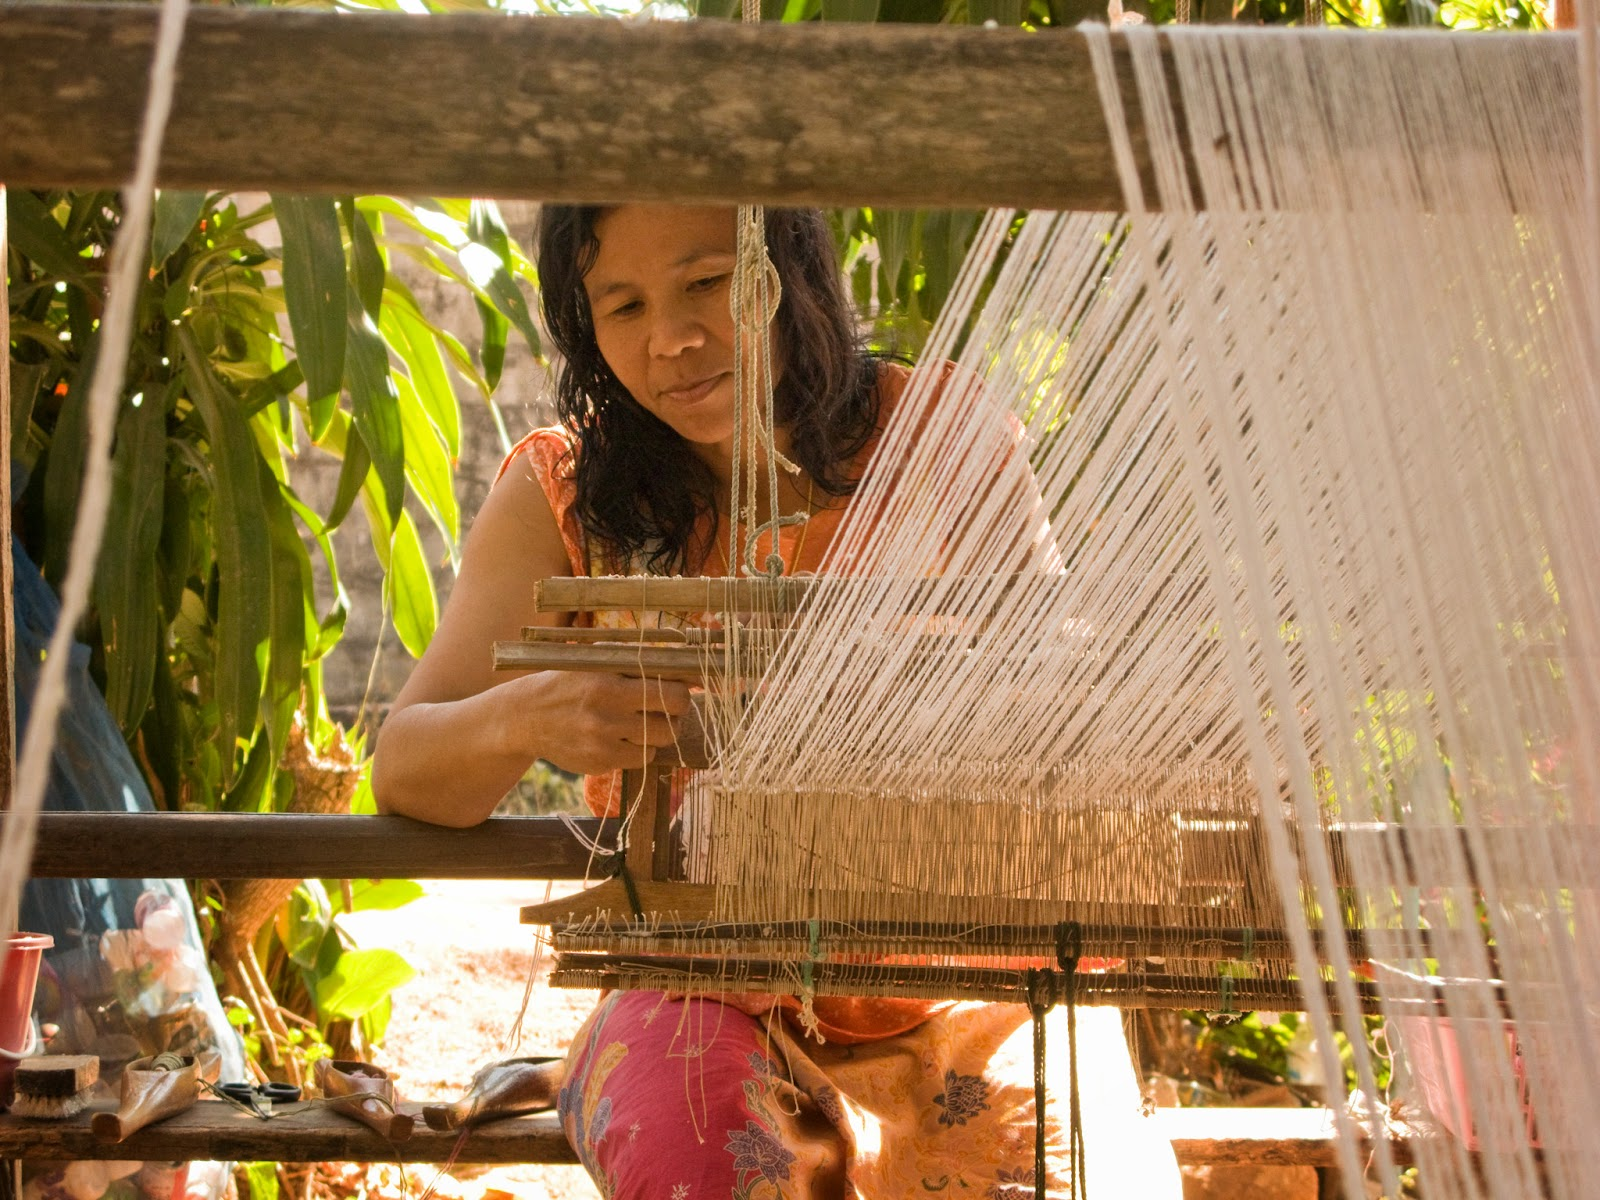 Benjaw learned to weave when she was 10, like most cotton and silk weavers in Thailand and Laos. She weaves when she has time, after caring for her 3 children and running a small village shop in her home.